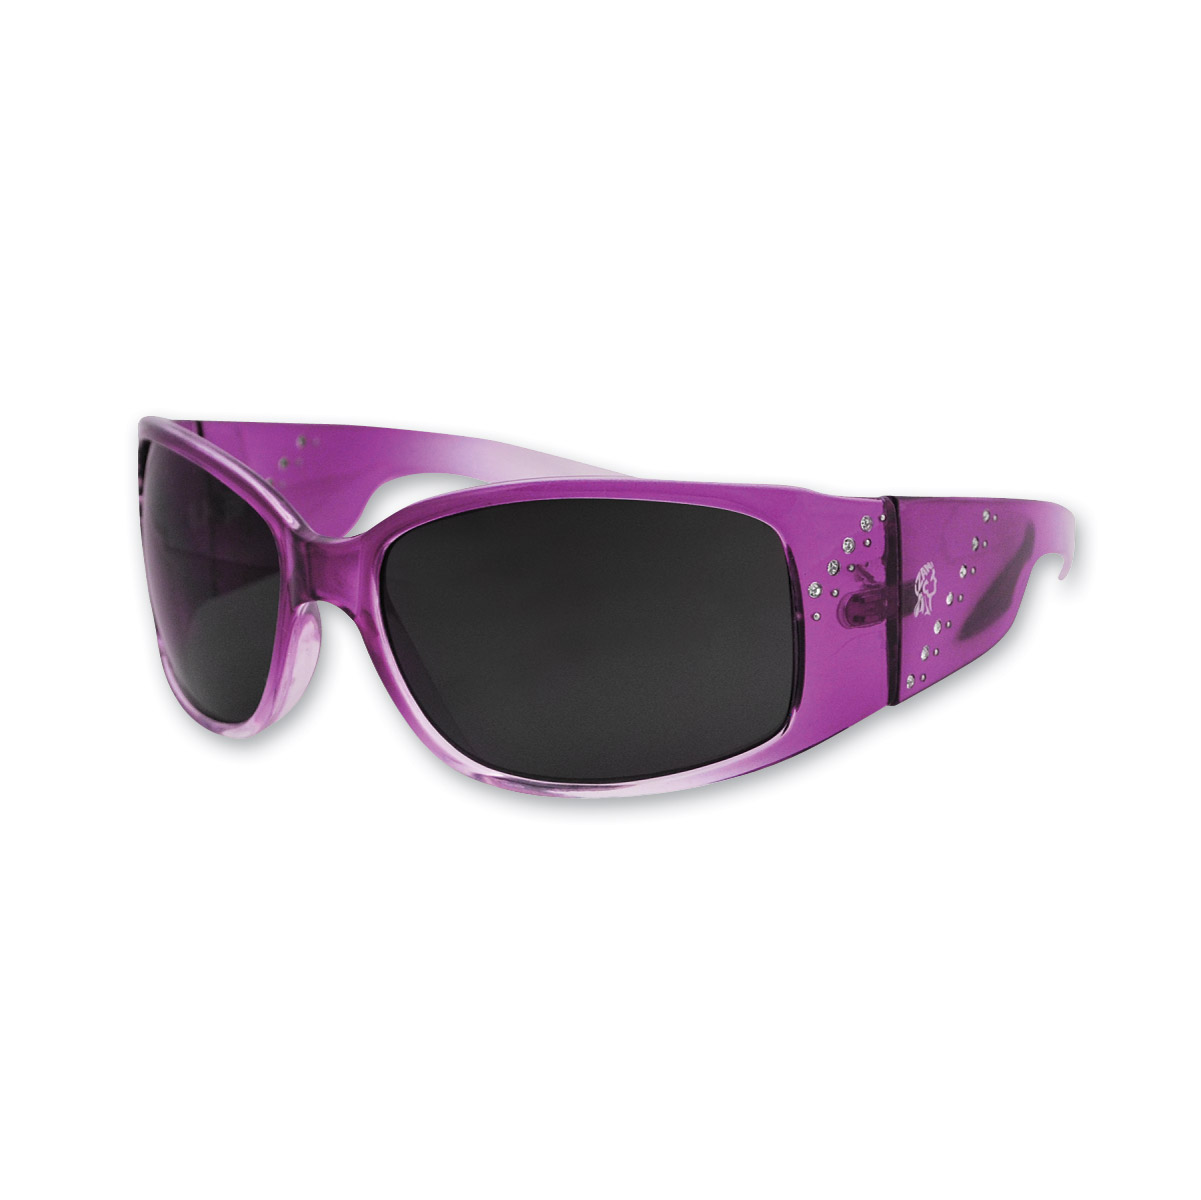 ZAN headgear Boise Crystal Purple Sunglasses with Smoked Lenses